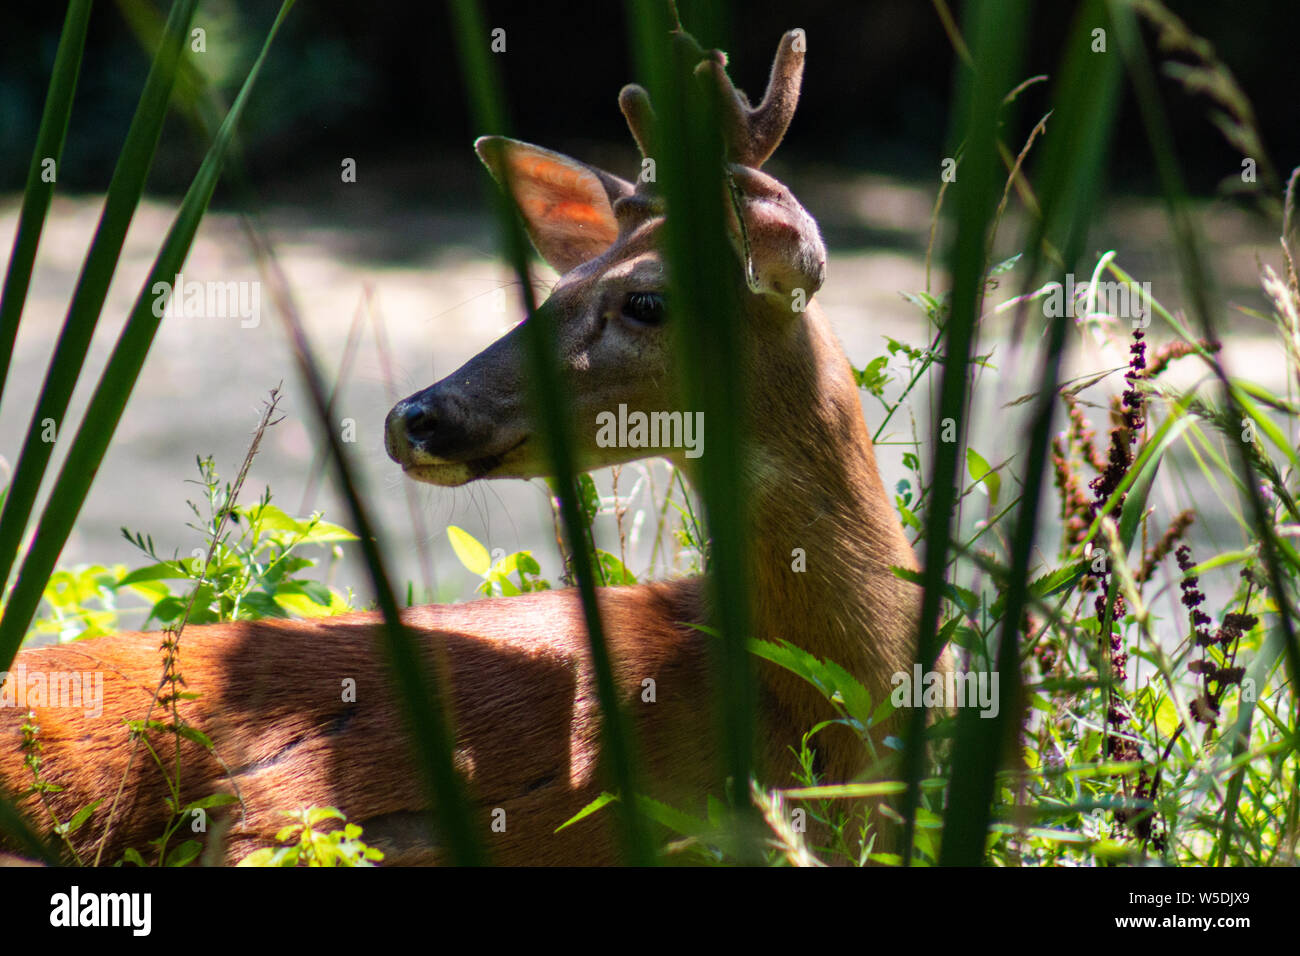 White-tailed deer in grass at Springfield Conservation Center in Springfield, Missouri Stock Photo